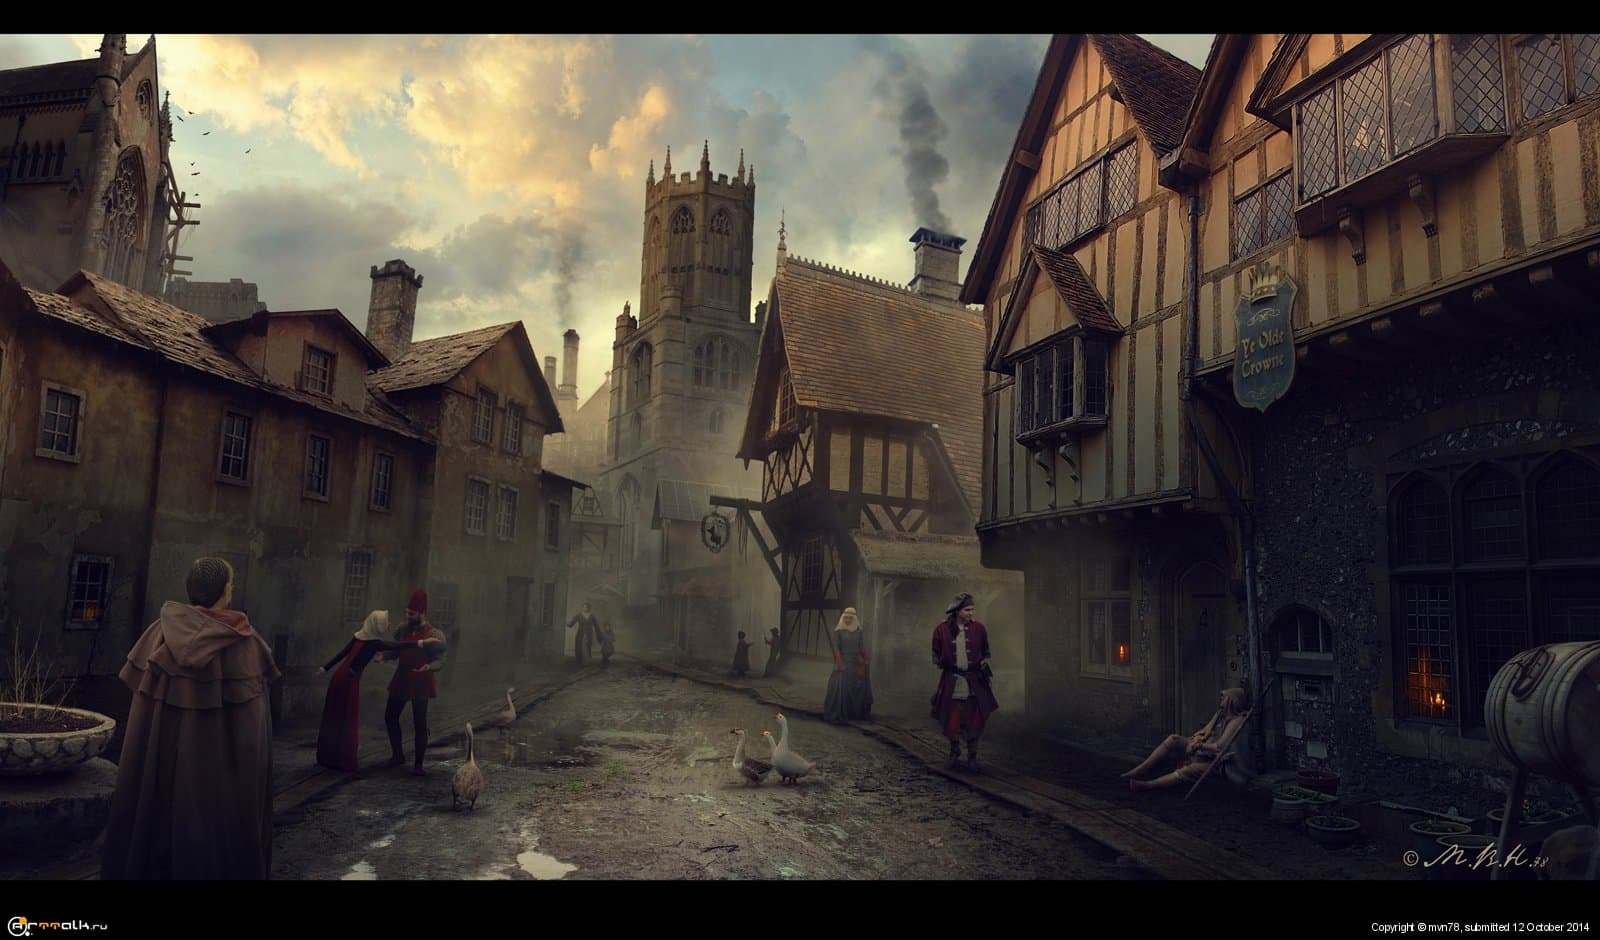 The Middle Ages - Morning